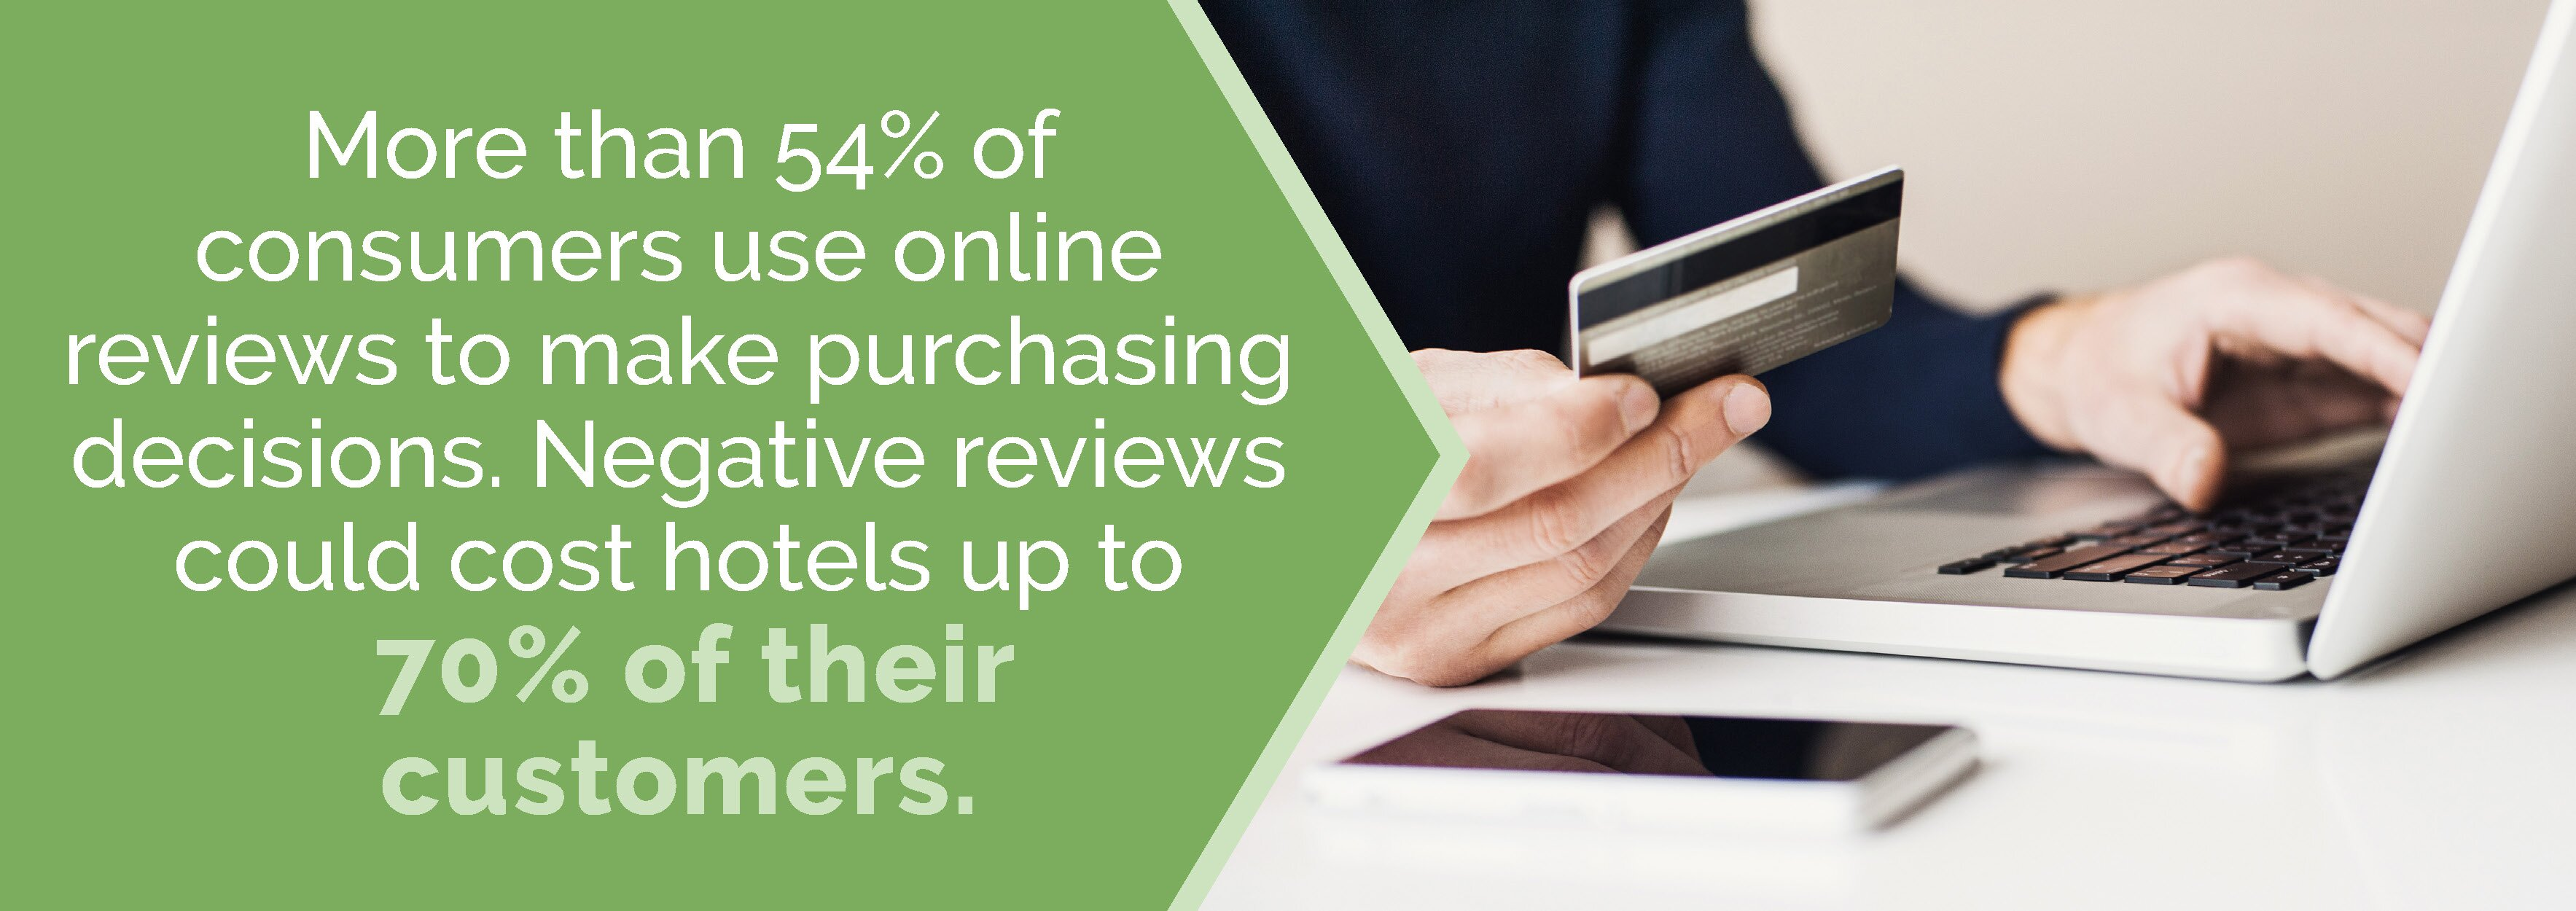 54% of consumers use online reviews to make purchasing decisions.